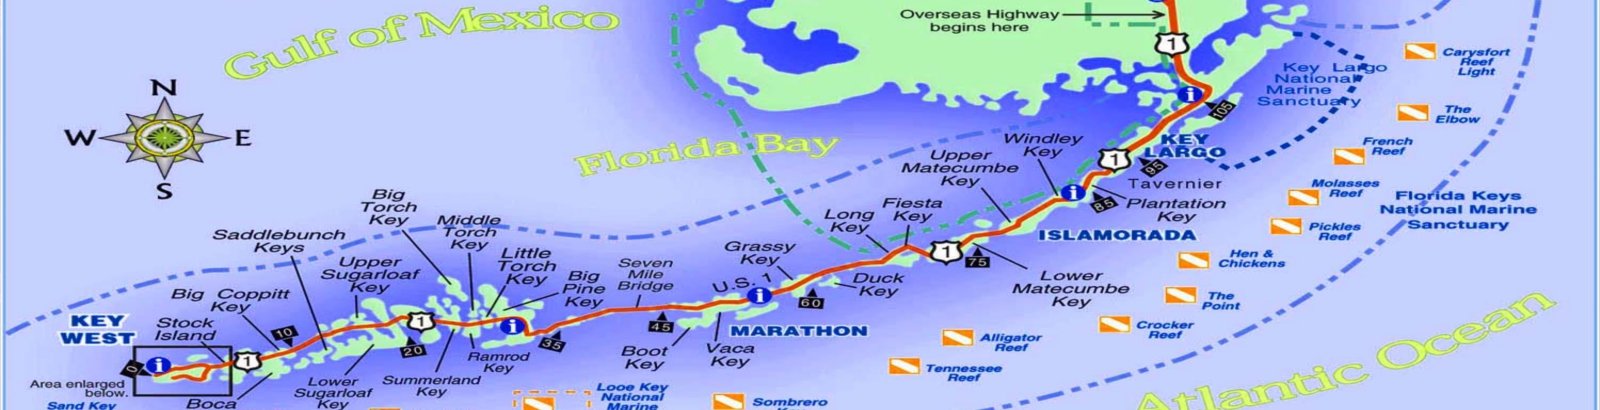 Map Florida Keys.Florida Keys Map Florida Keys Discounts Couponsflorida Keys